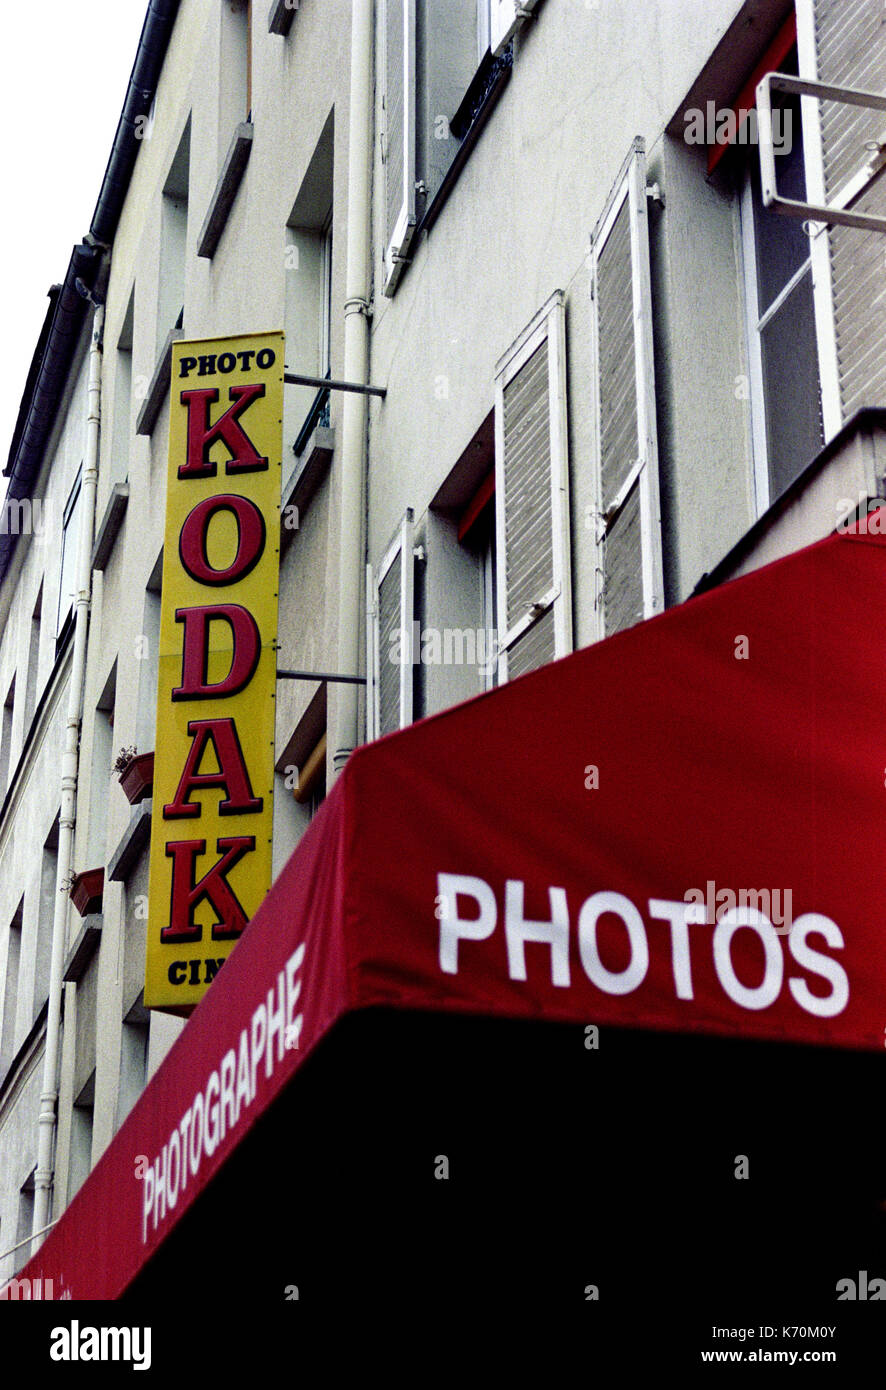 KODAK WALL LOGO PARIS PHOTOS SHOP - PARIS SHOP - VINTAGE  LOGO - PARIS STREET - KODAK LOGO - SILVER FILM © Frédéric BEAUMONT - Stock Image